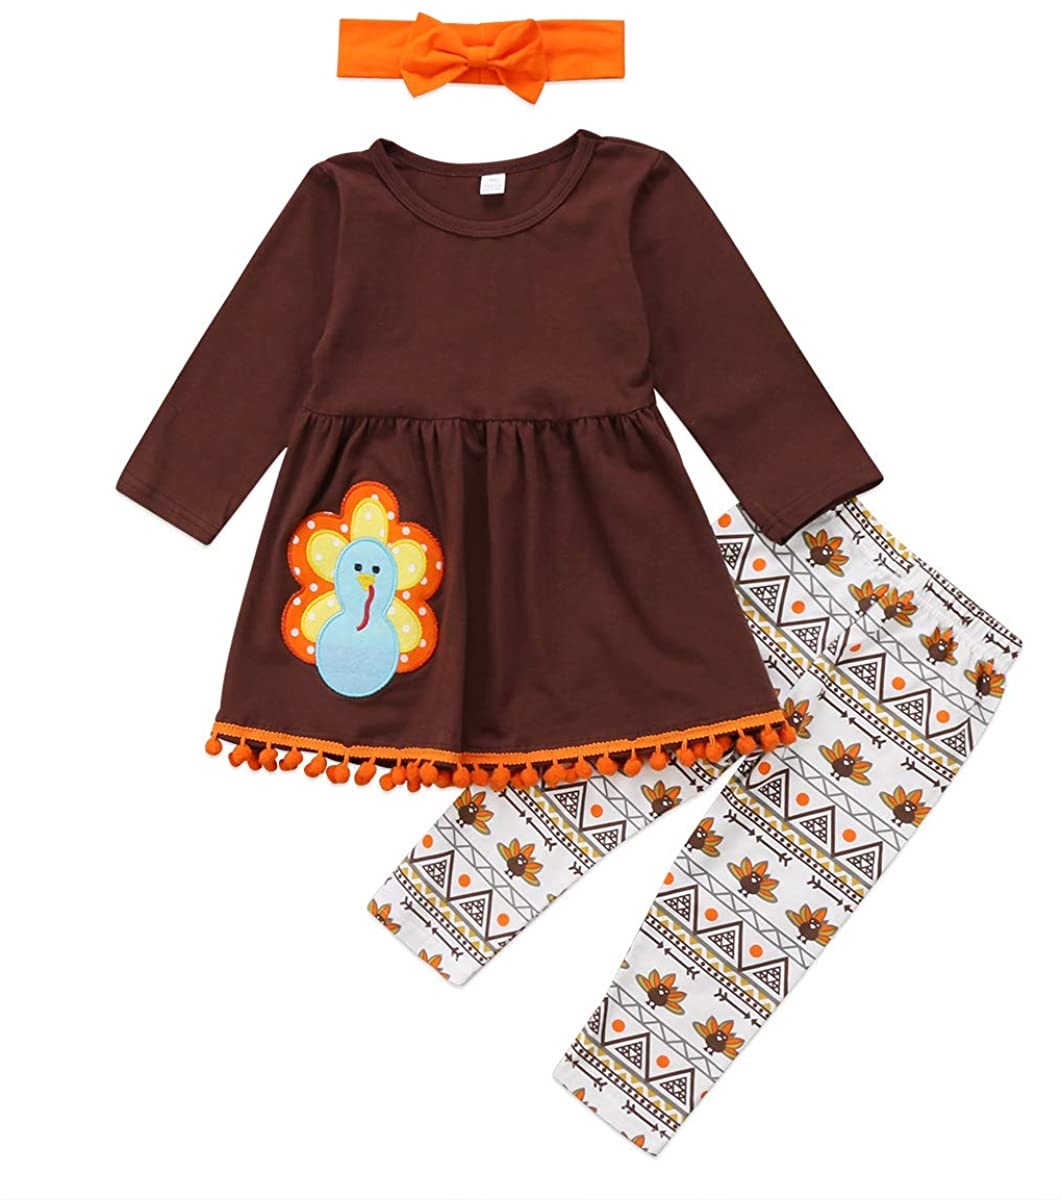 GOOCHEER Thanksgiving Toddler Girl Outfit Turkey Long Sleeve Top Dress Pants Headband 3Pcs Clothes Clothing Costumes 2-7T